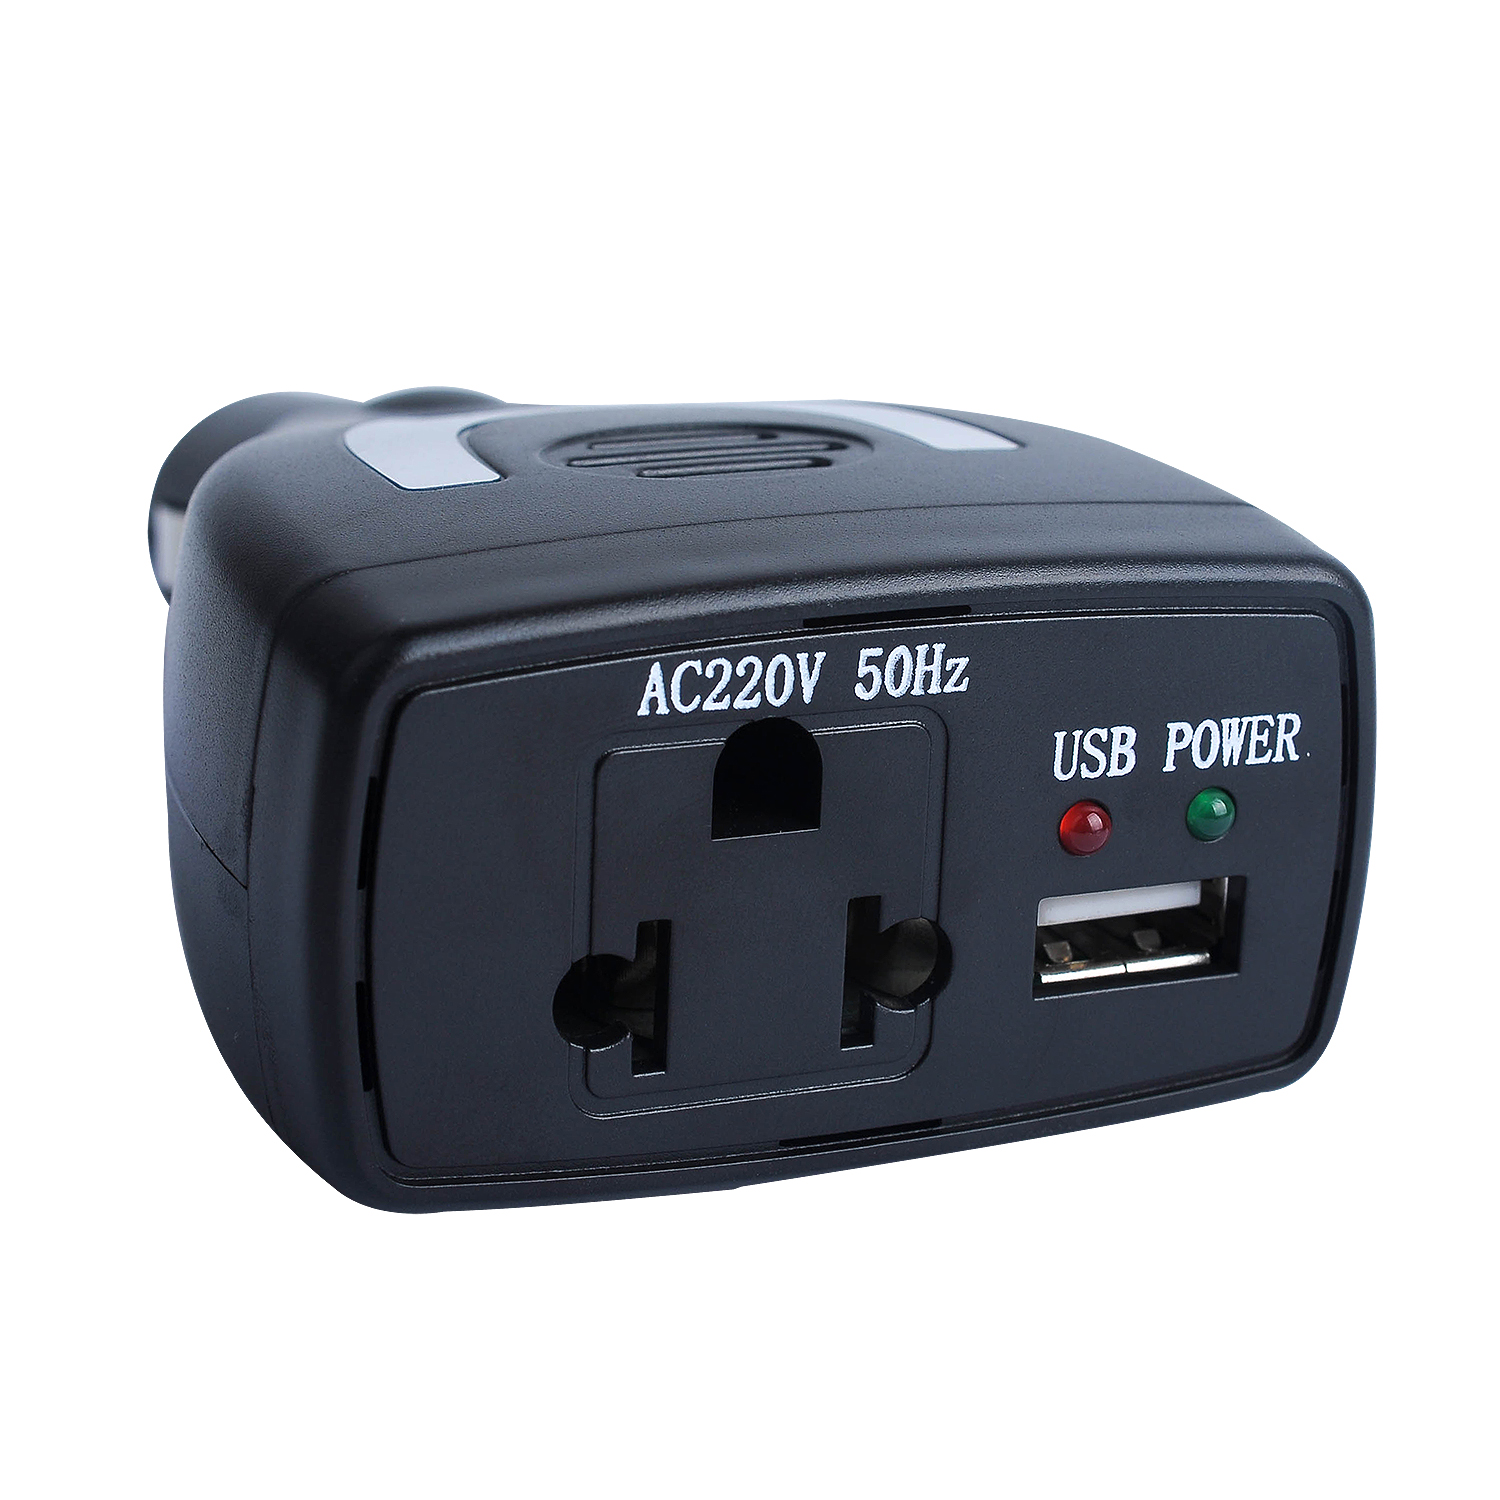 75W car inverter 12v to 220v dc ac car power inverter for laptop MP3 camera